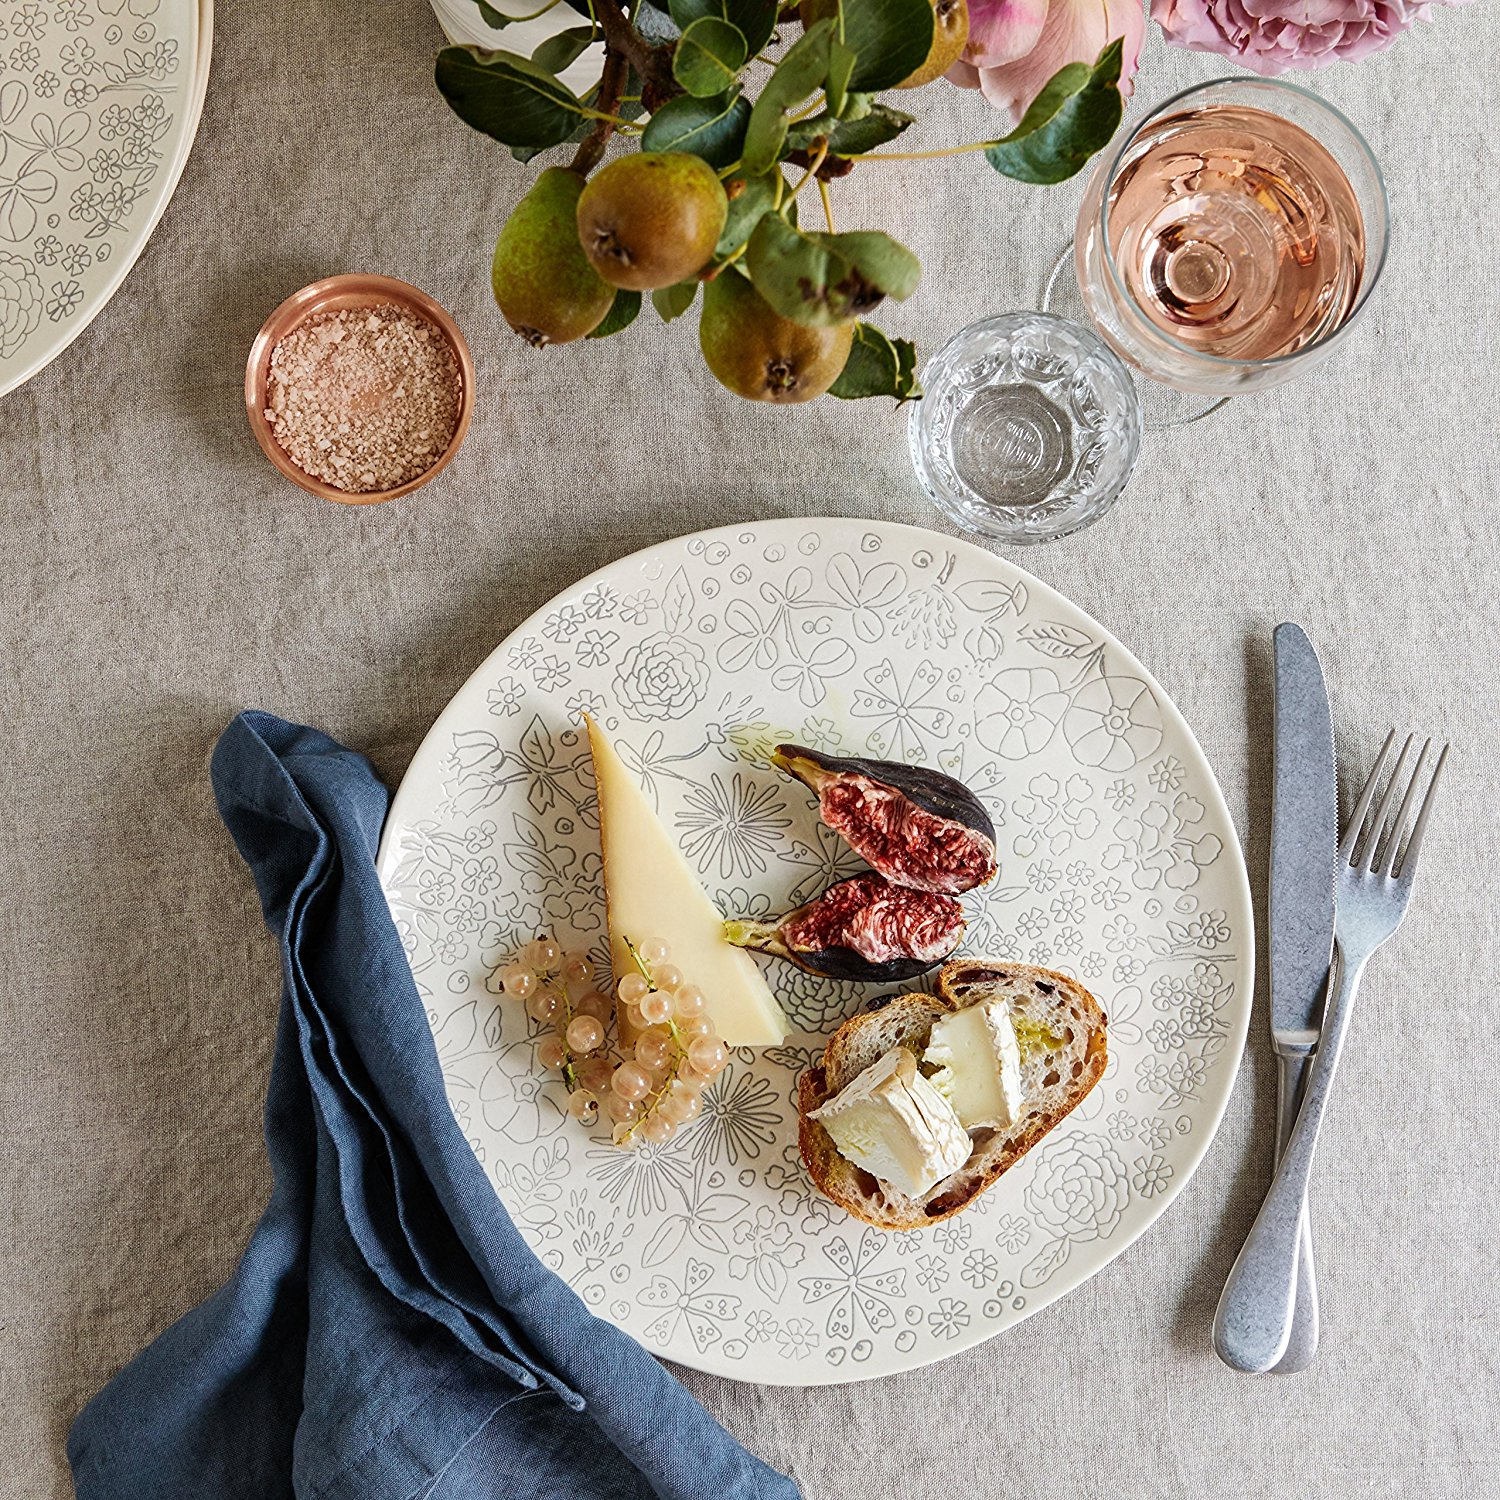 The prettiest, whimsical floral dishes that are just perfect for Spring - and they're exclusive to Amazon! | glitterinc.com | @glitterinc - The Prettiest Ceramic Dinnerware by popular North Carolina style blogger Glitter, Inc.